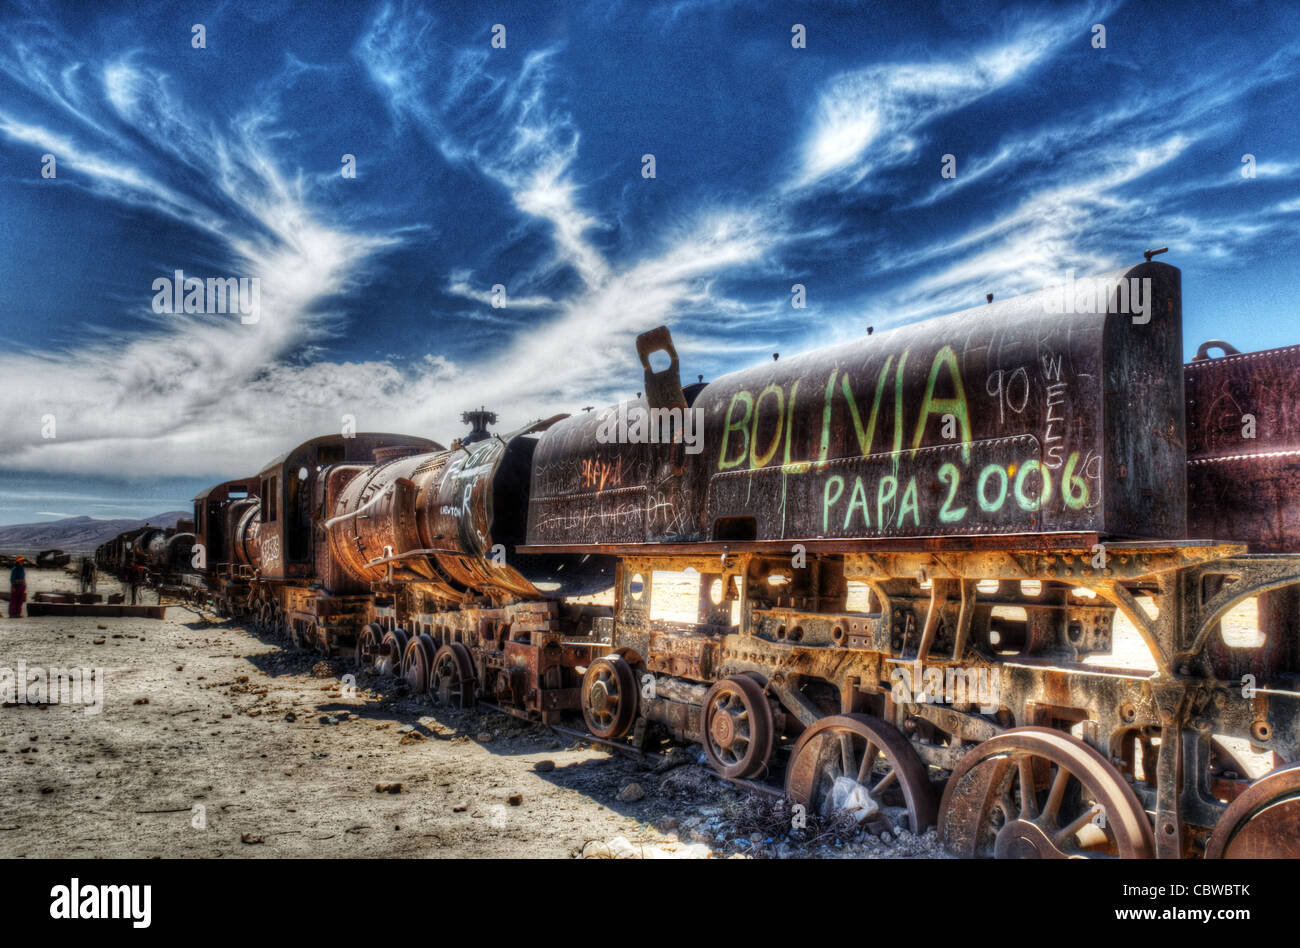 Disused steam trains abandoned in the desert near Uyuni in Bolivia - Stock Image